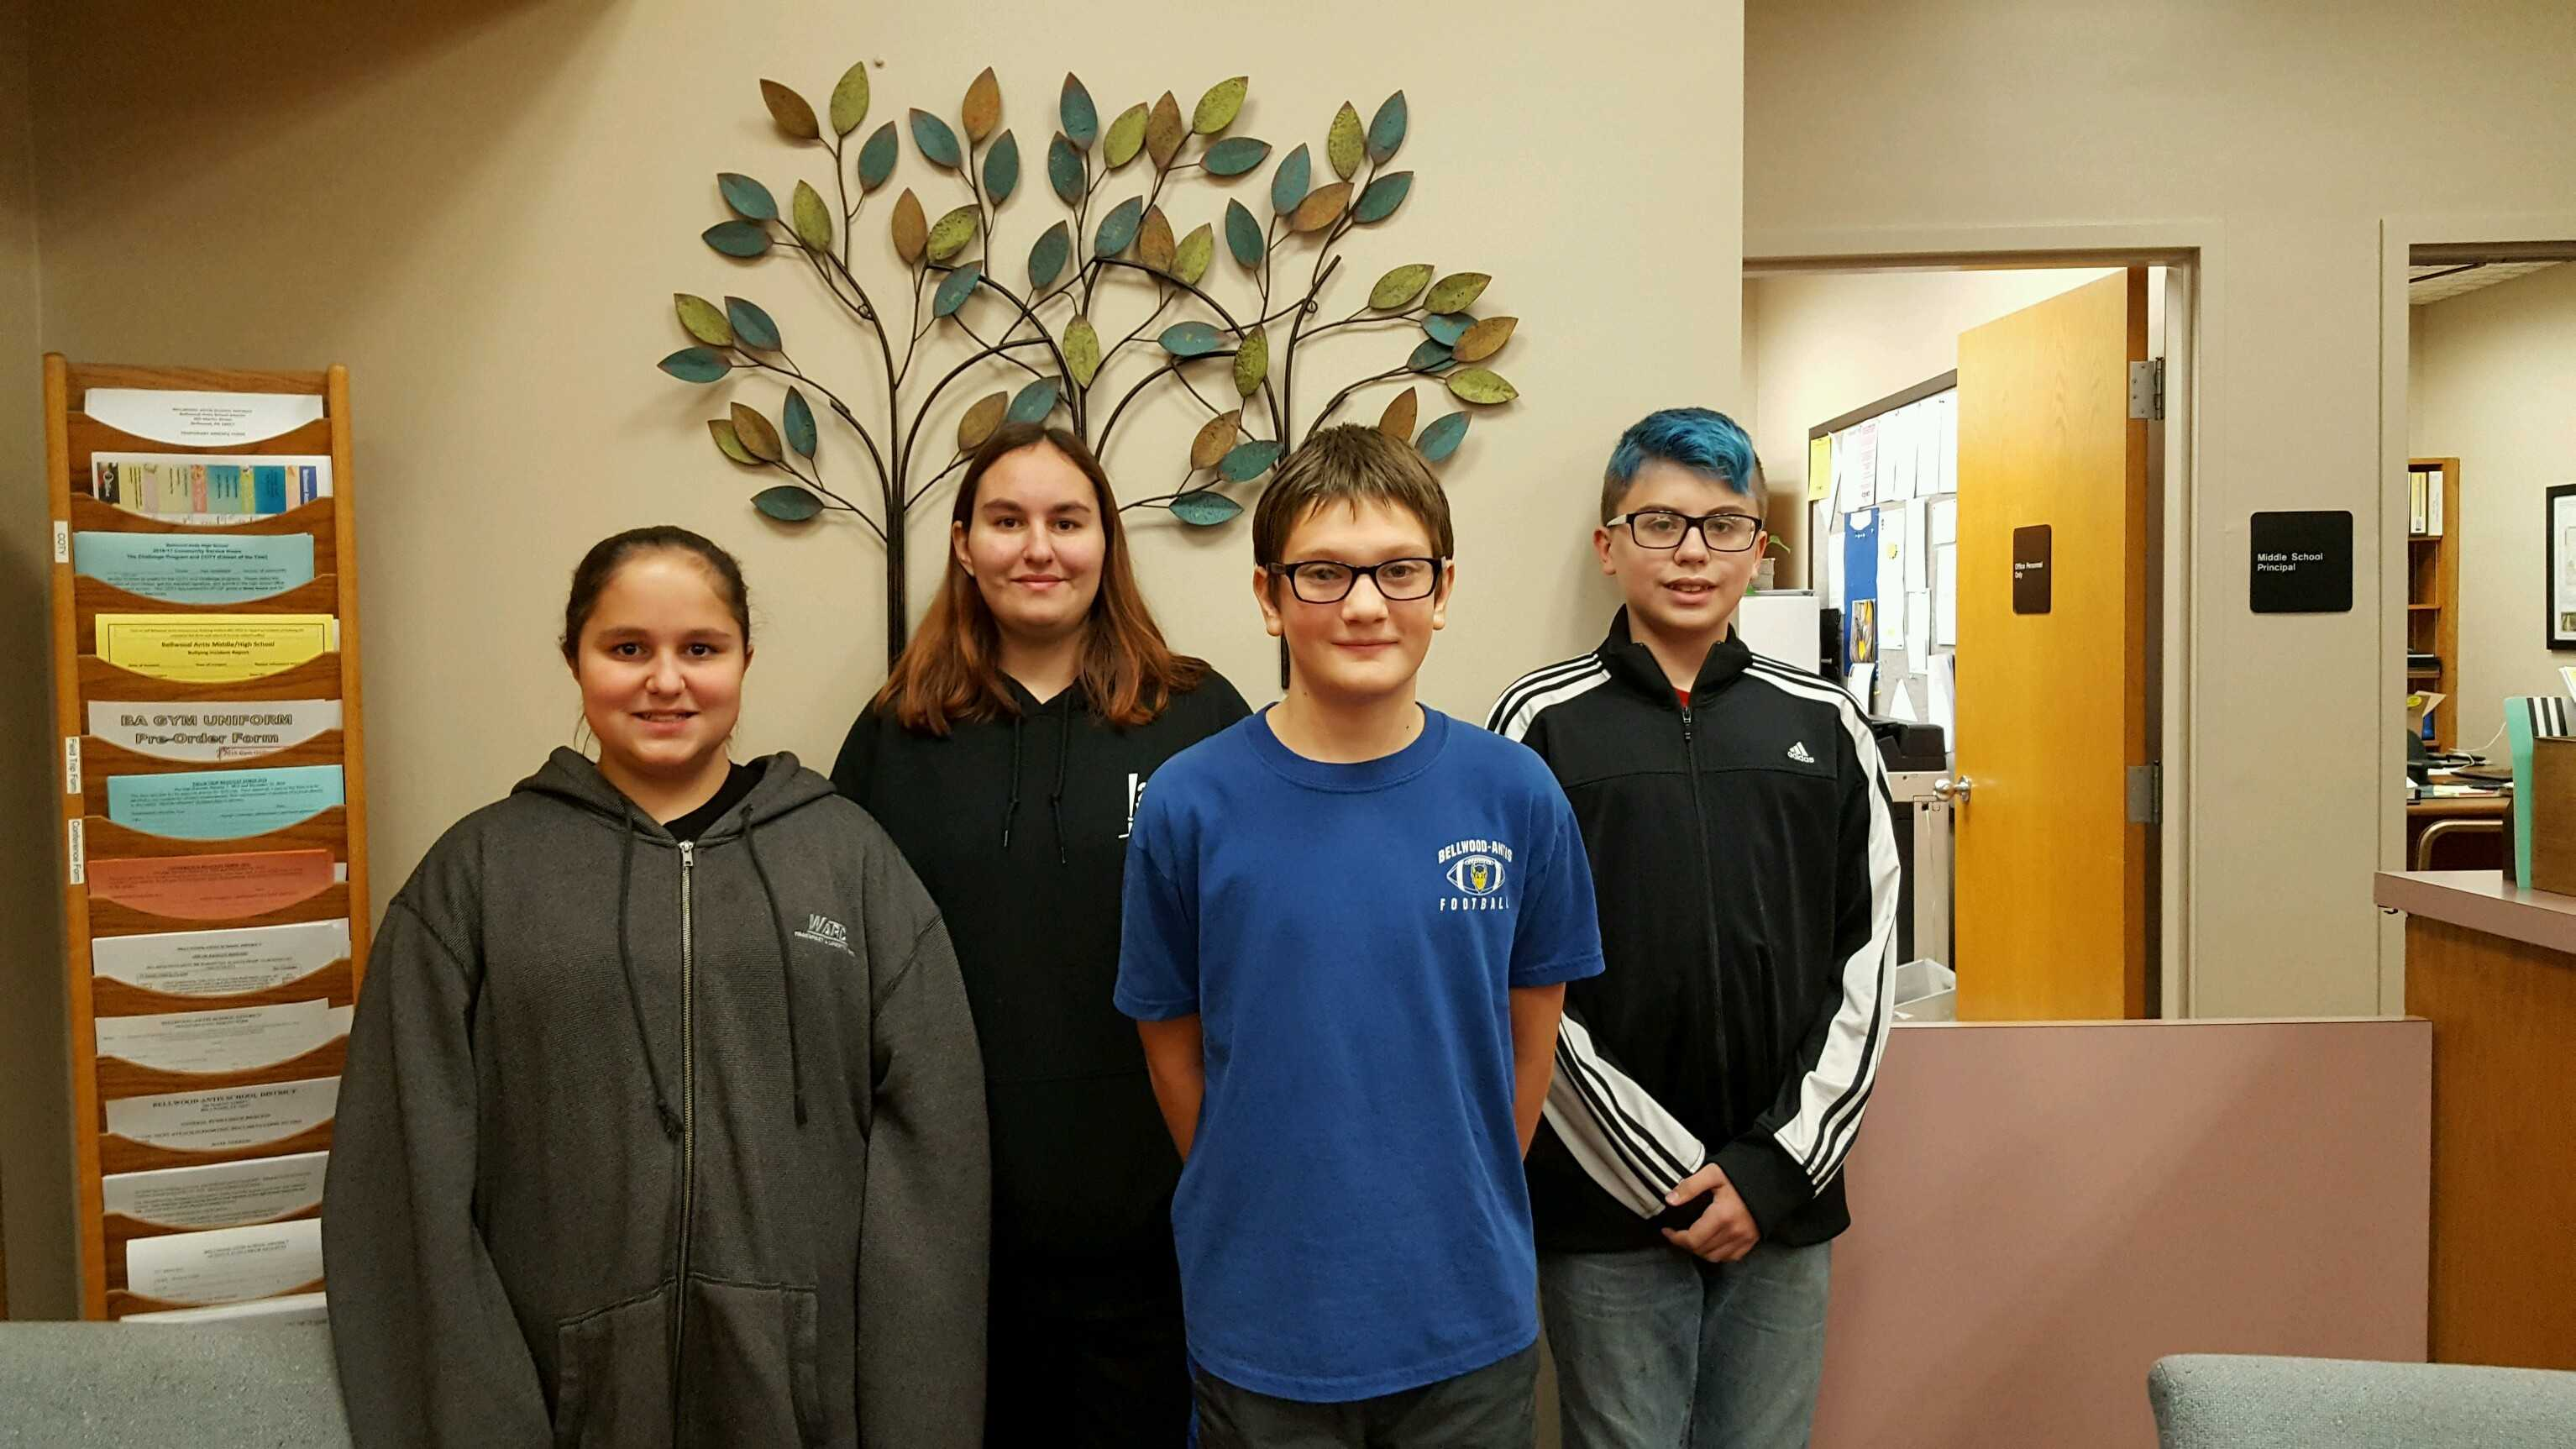 Middle School Students of the Week this week are (l to r): Middison Cassidy, Halee Cassidy, Corigan Shanafelt and Jack Gordon.